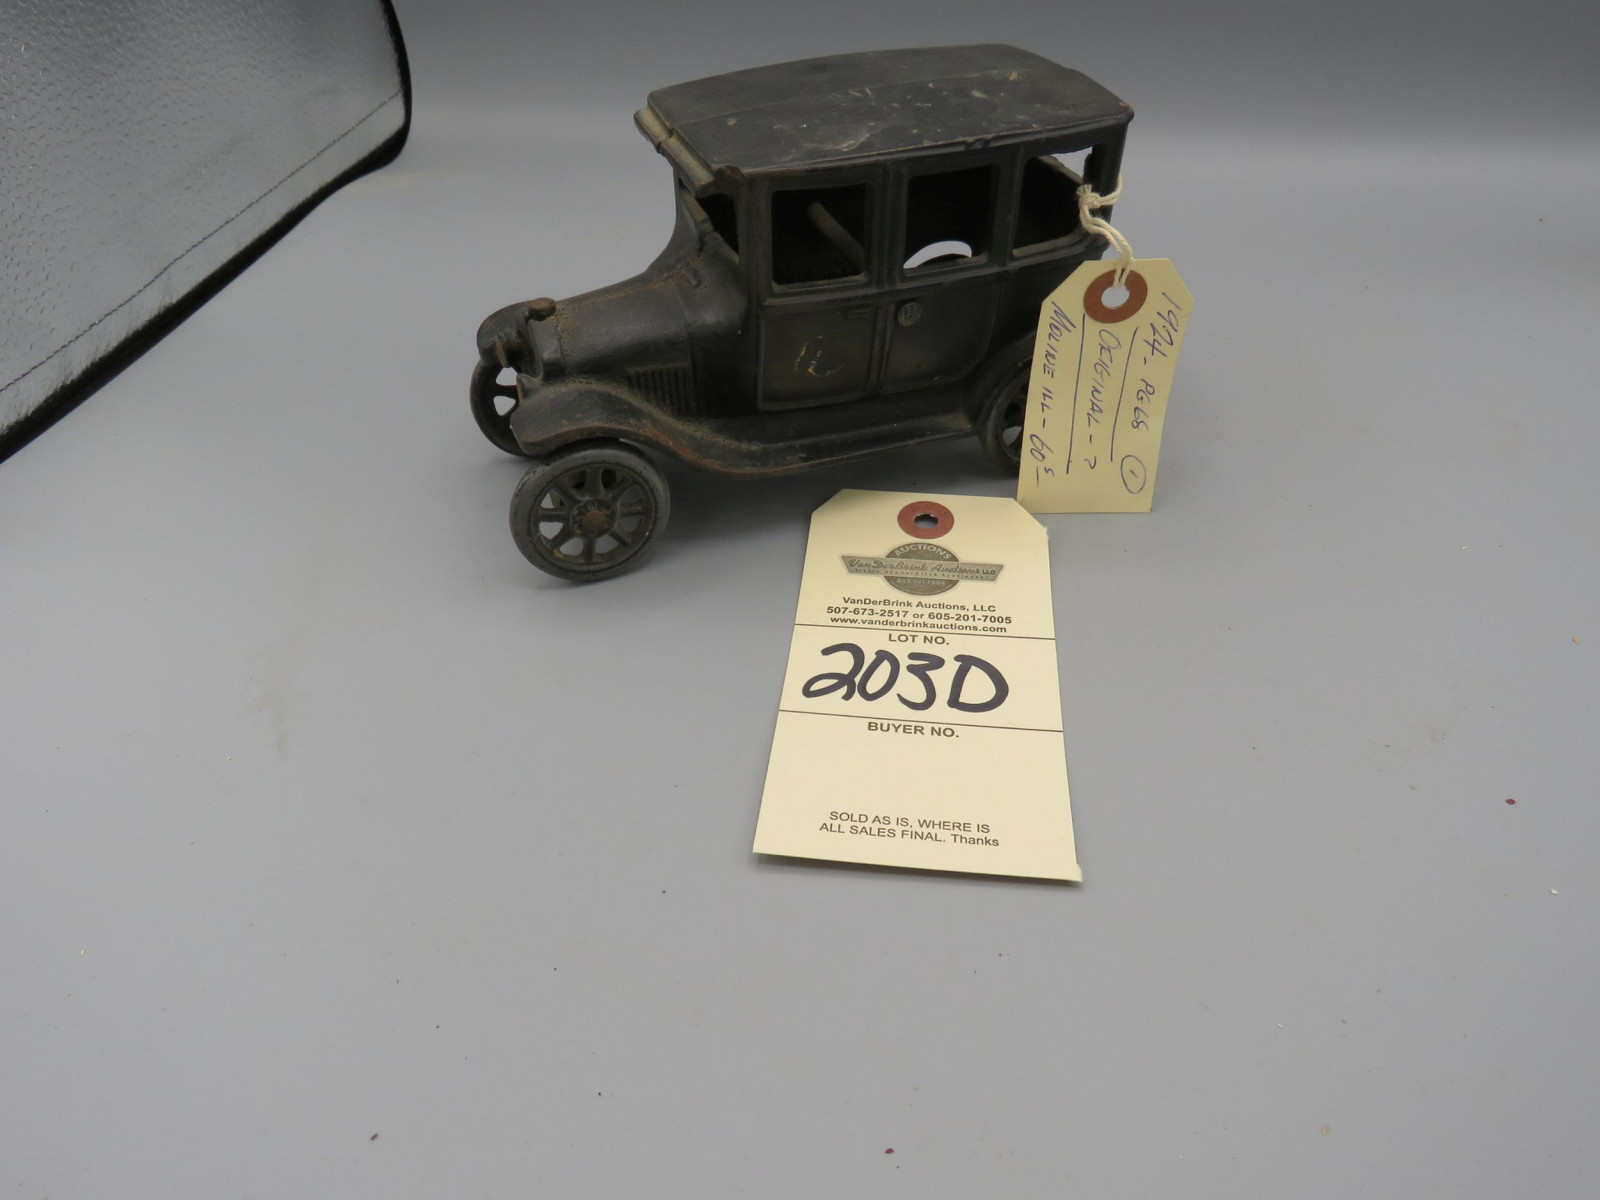 Arcade Cast Iron Chevrolet Superior Sedan @1925 Approx. 7 inches - Image 1